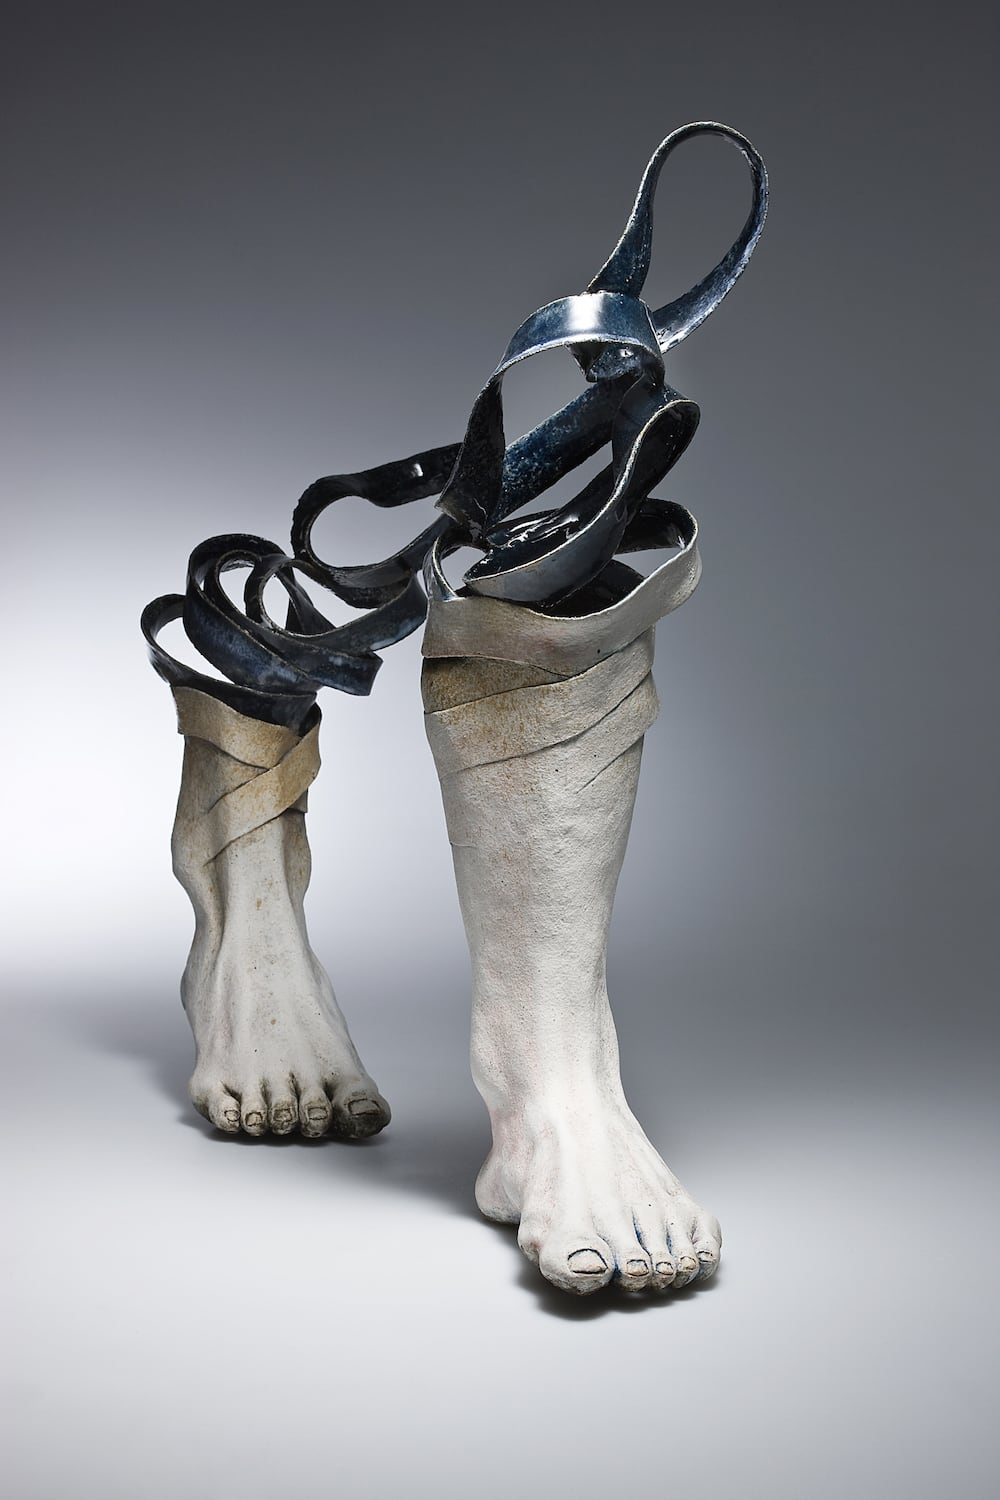 HaejinLee 2008 - Artist Creates Ceramic Sculptures That Unwind Before Your Eyes